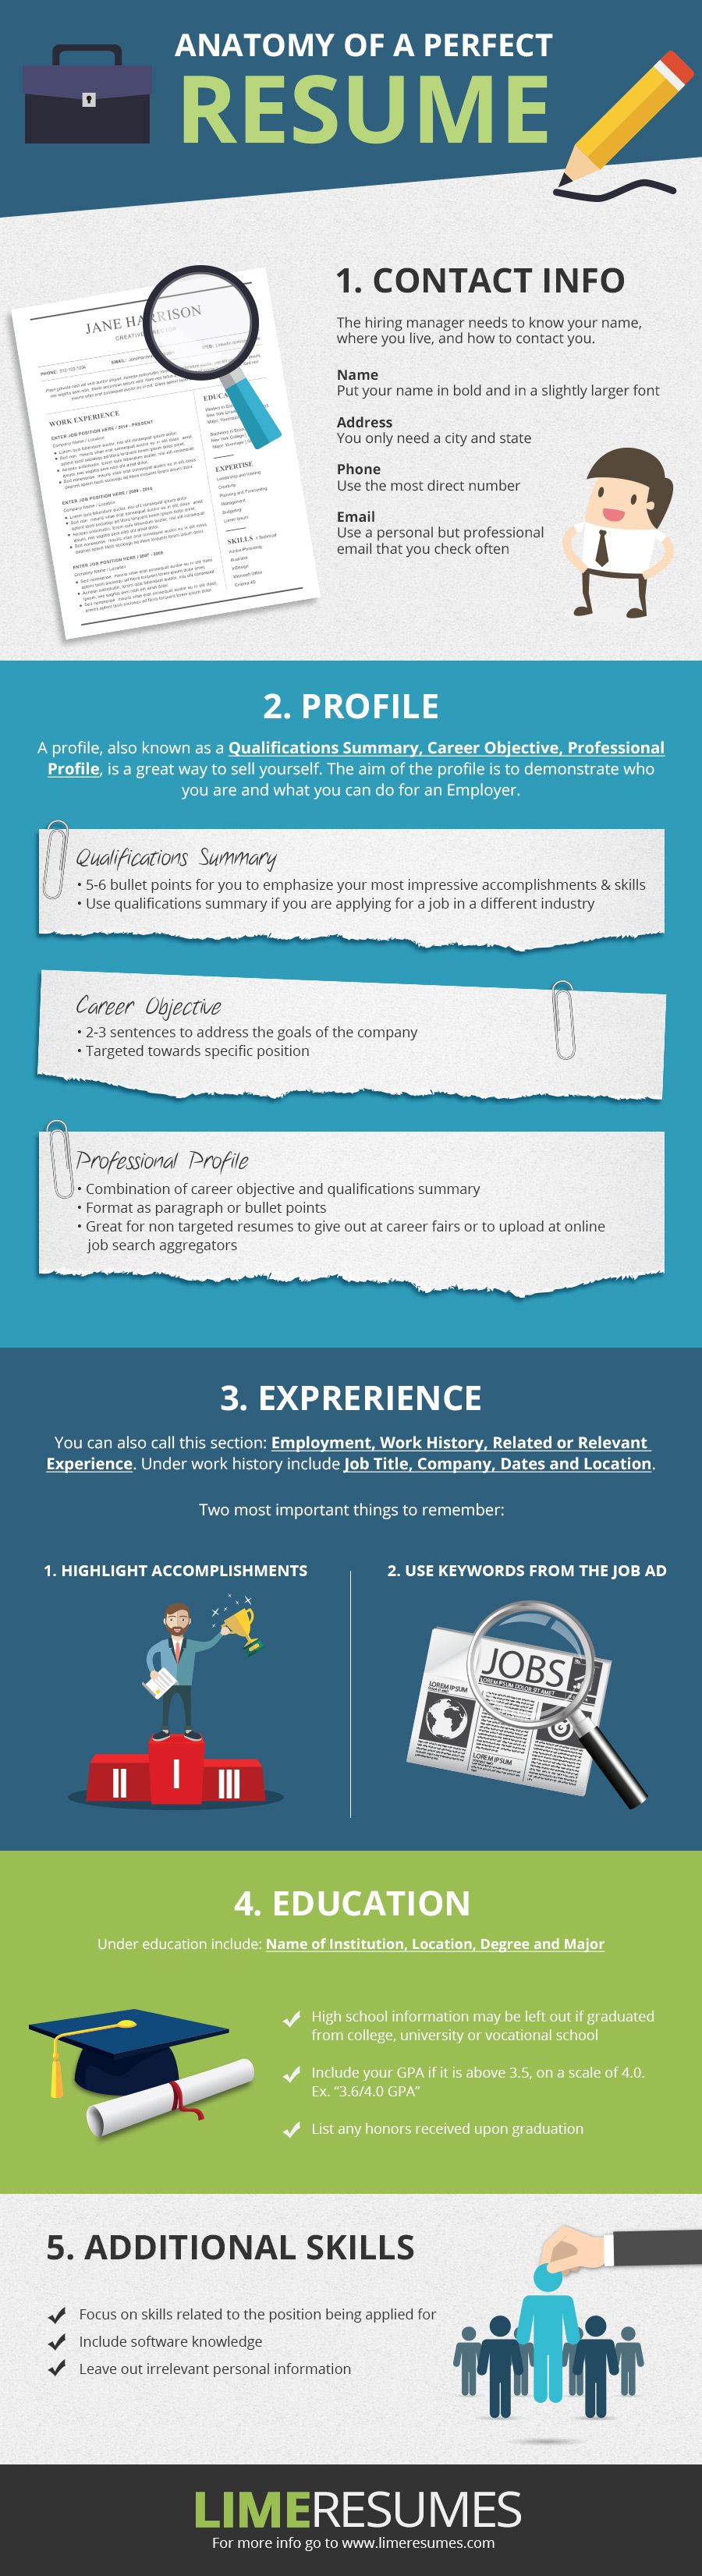 impressive objective for resume%0A Anatomy of a perfect resume  Infographic on how to put together a resume  for any